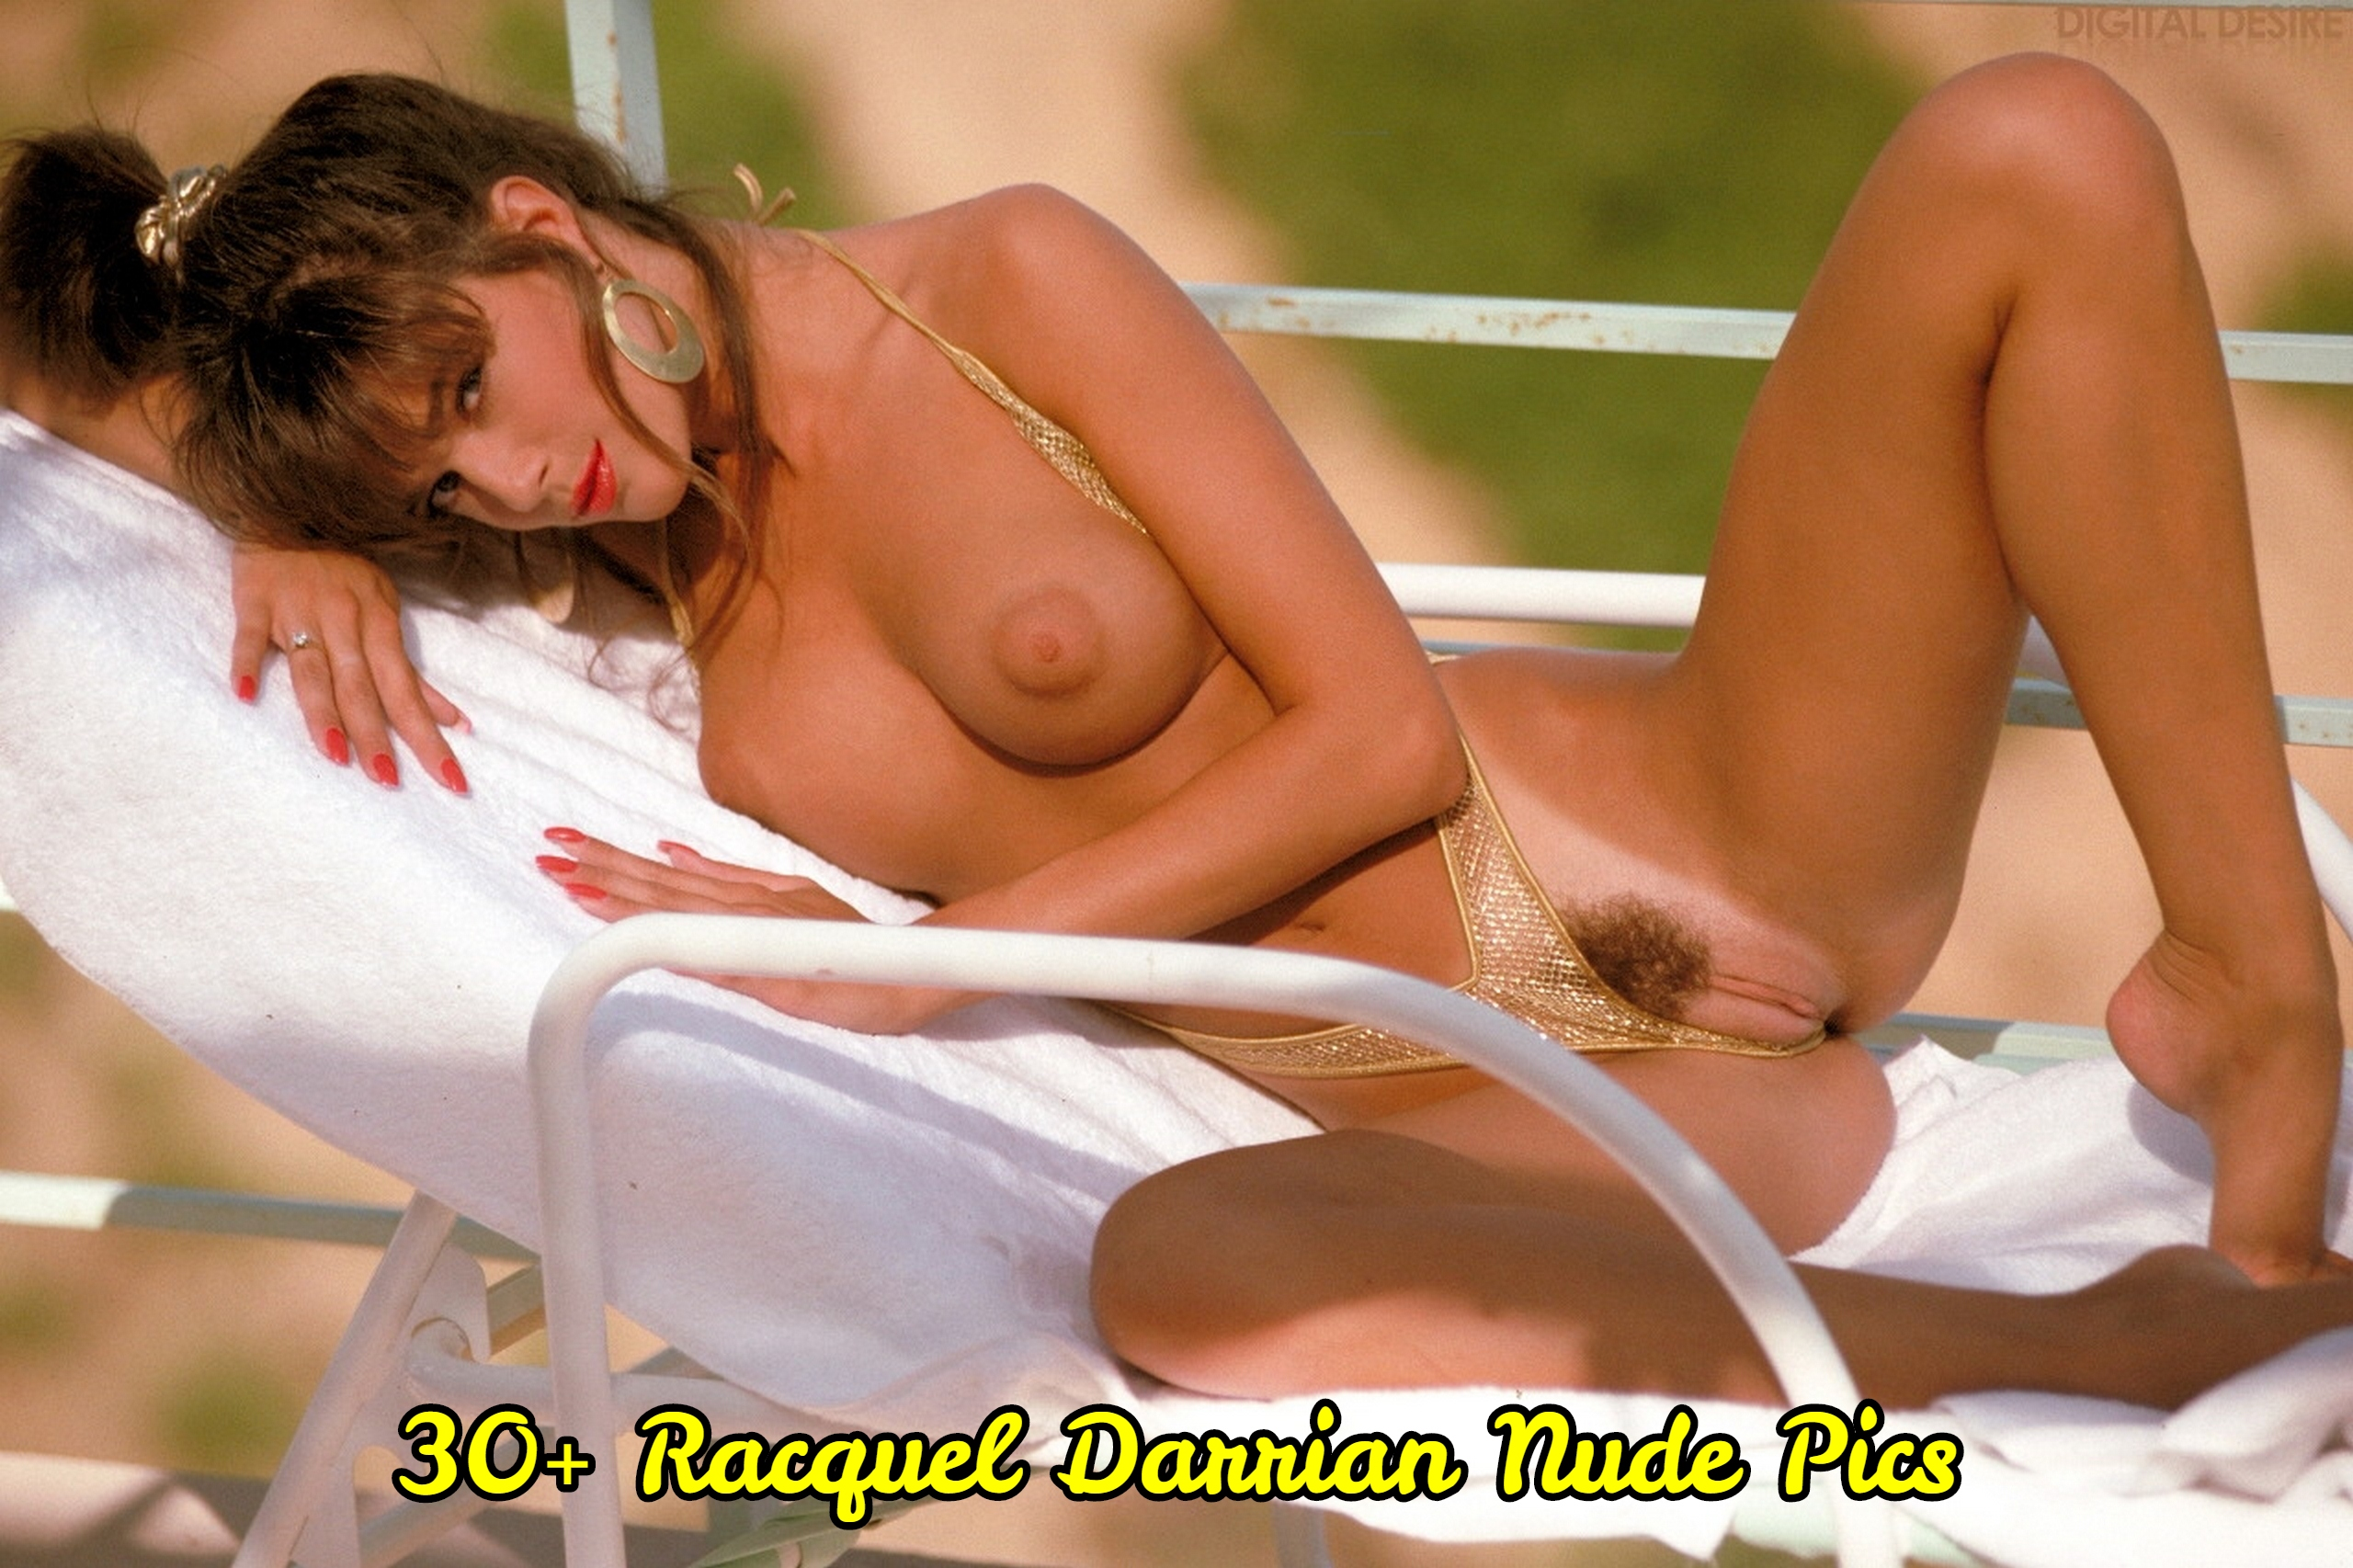 Racquel Darrian naked